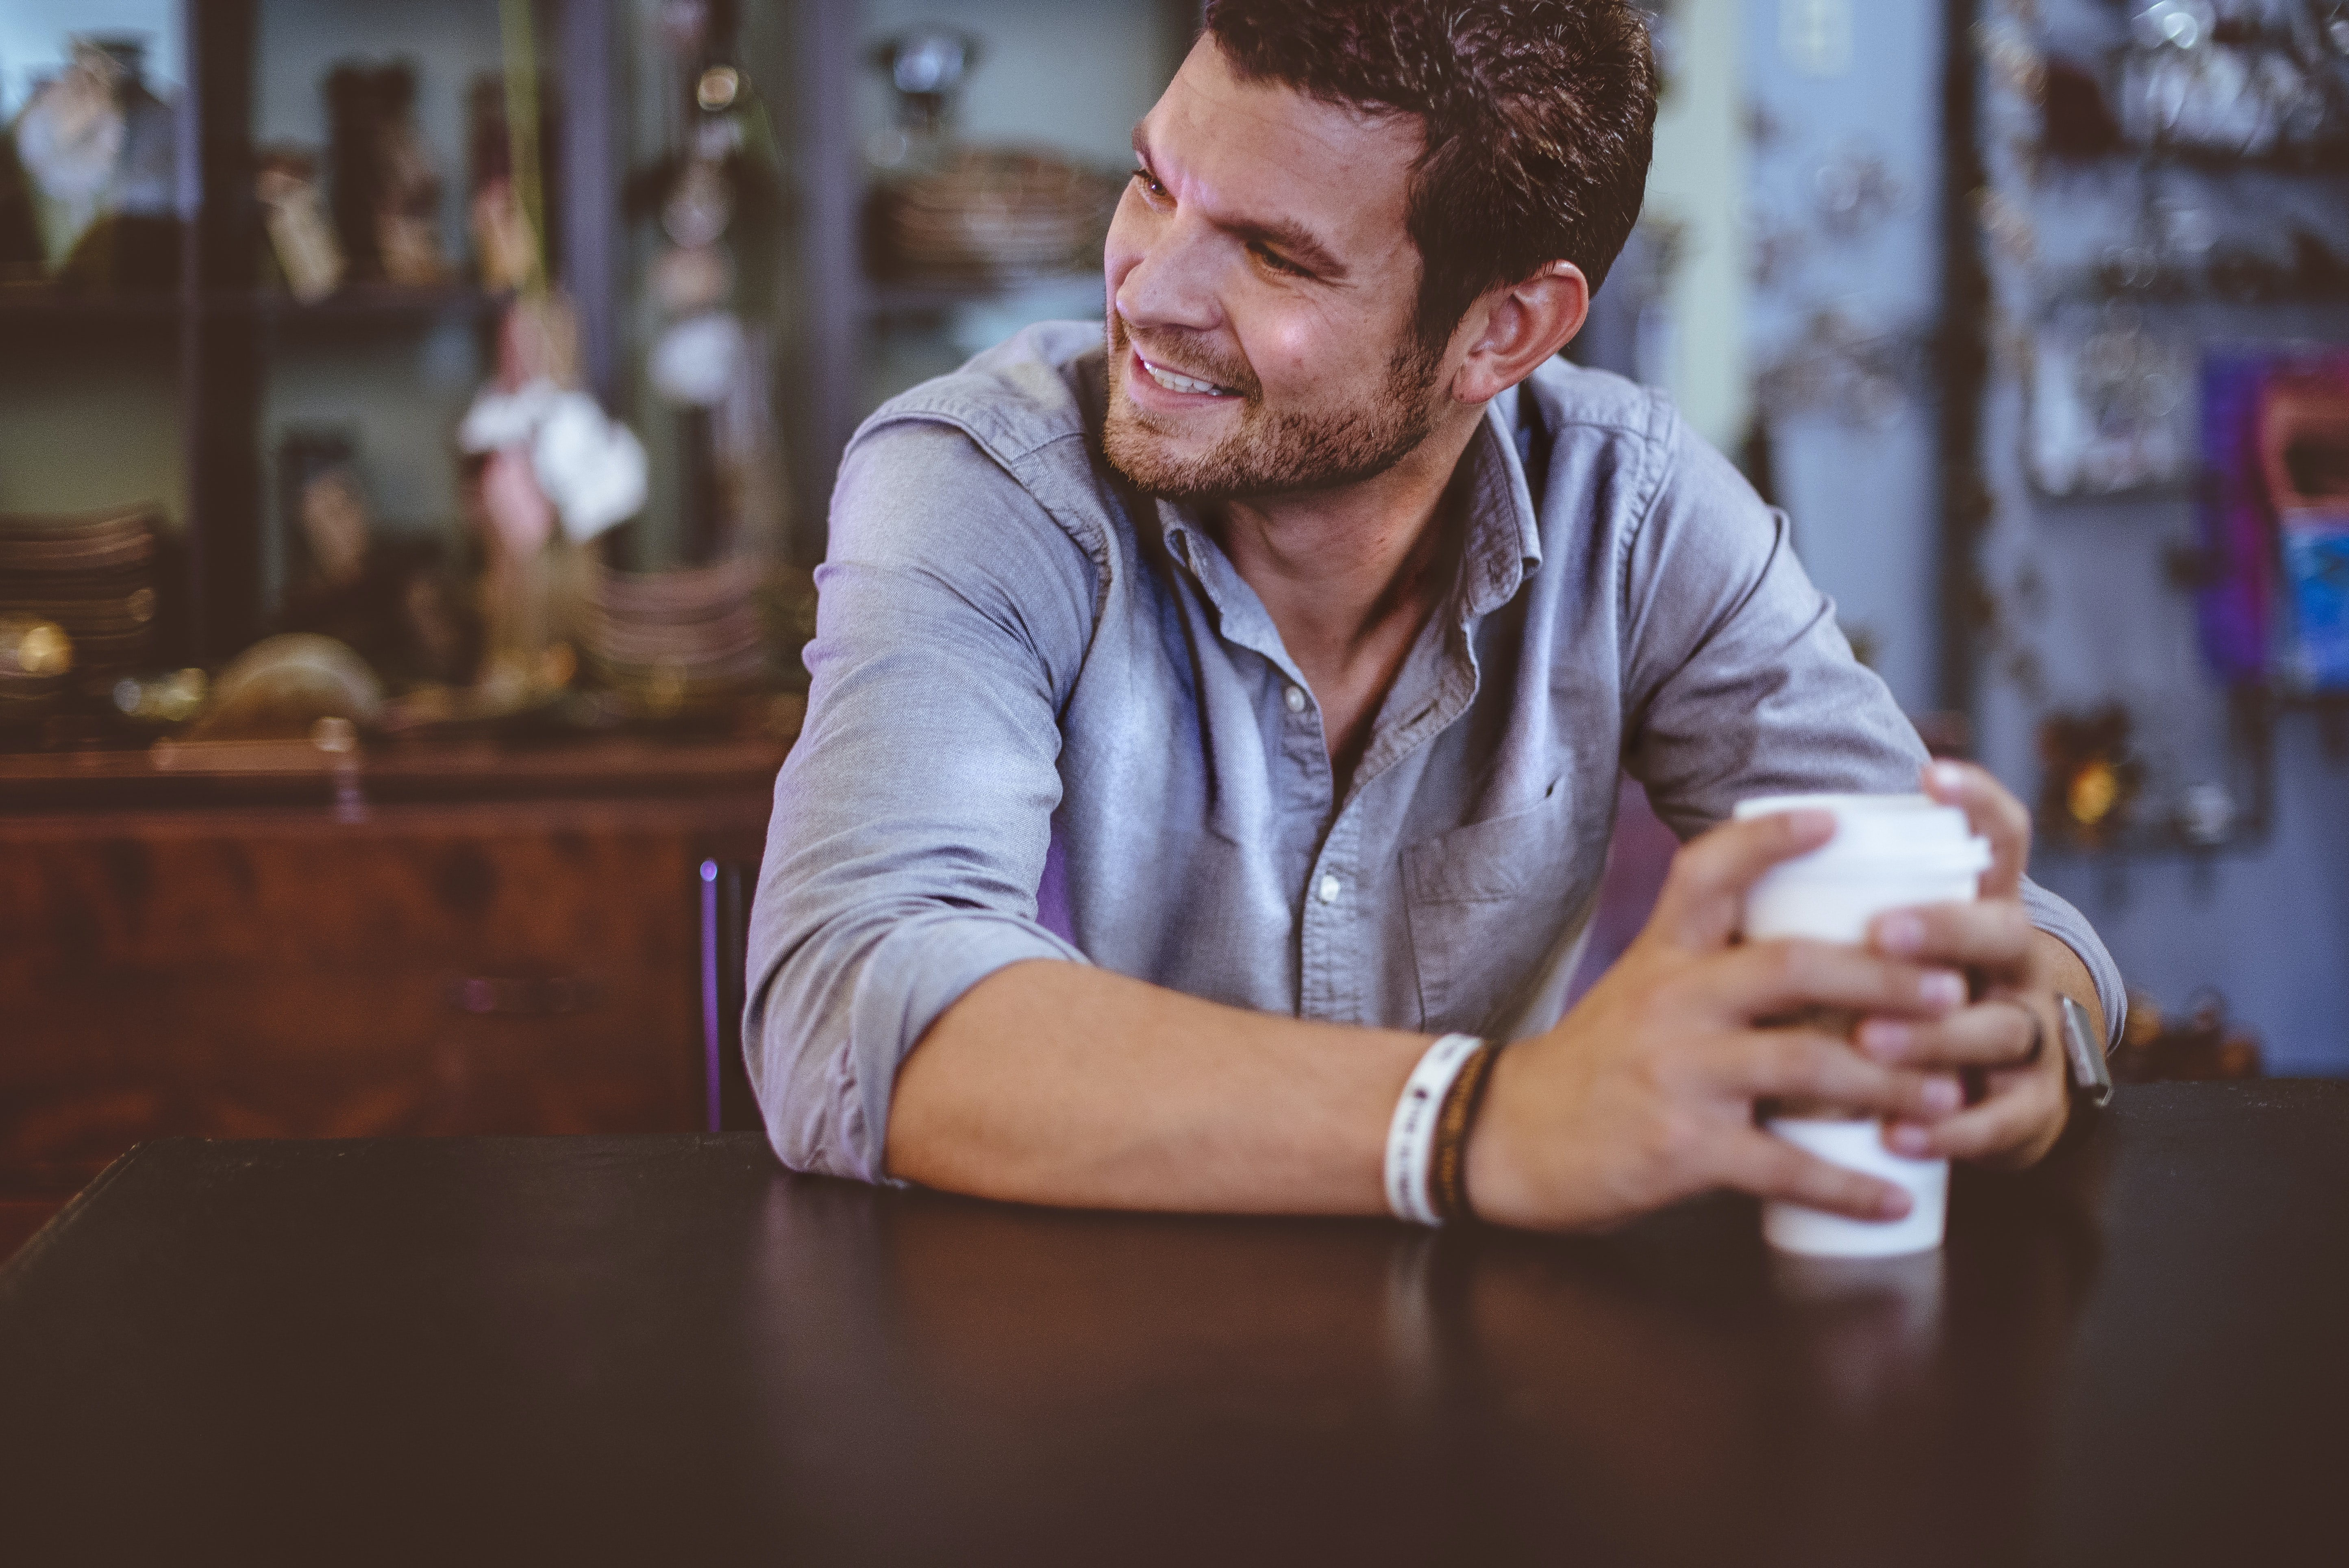 A man in a denim shirt sitting at a table and clutching a cup of coffee